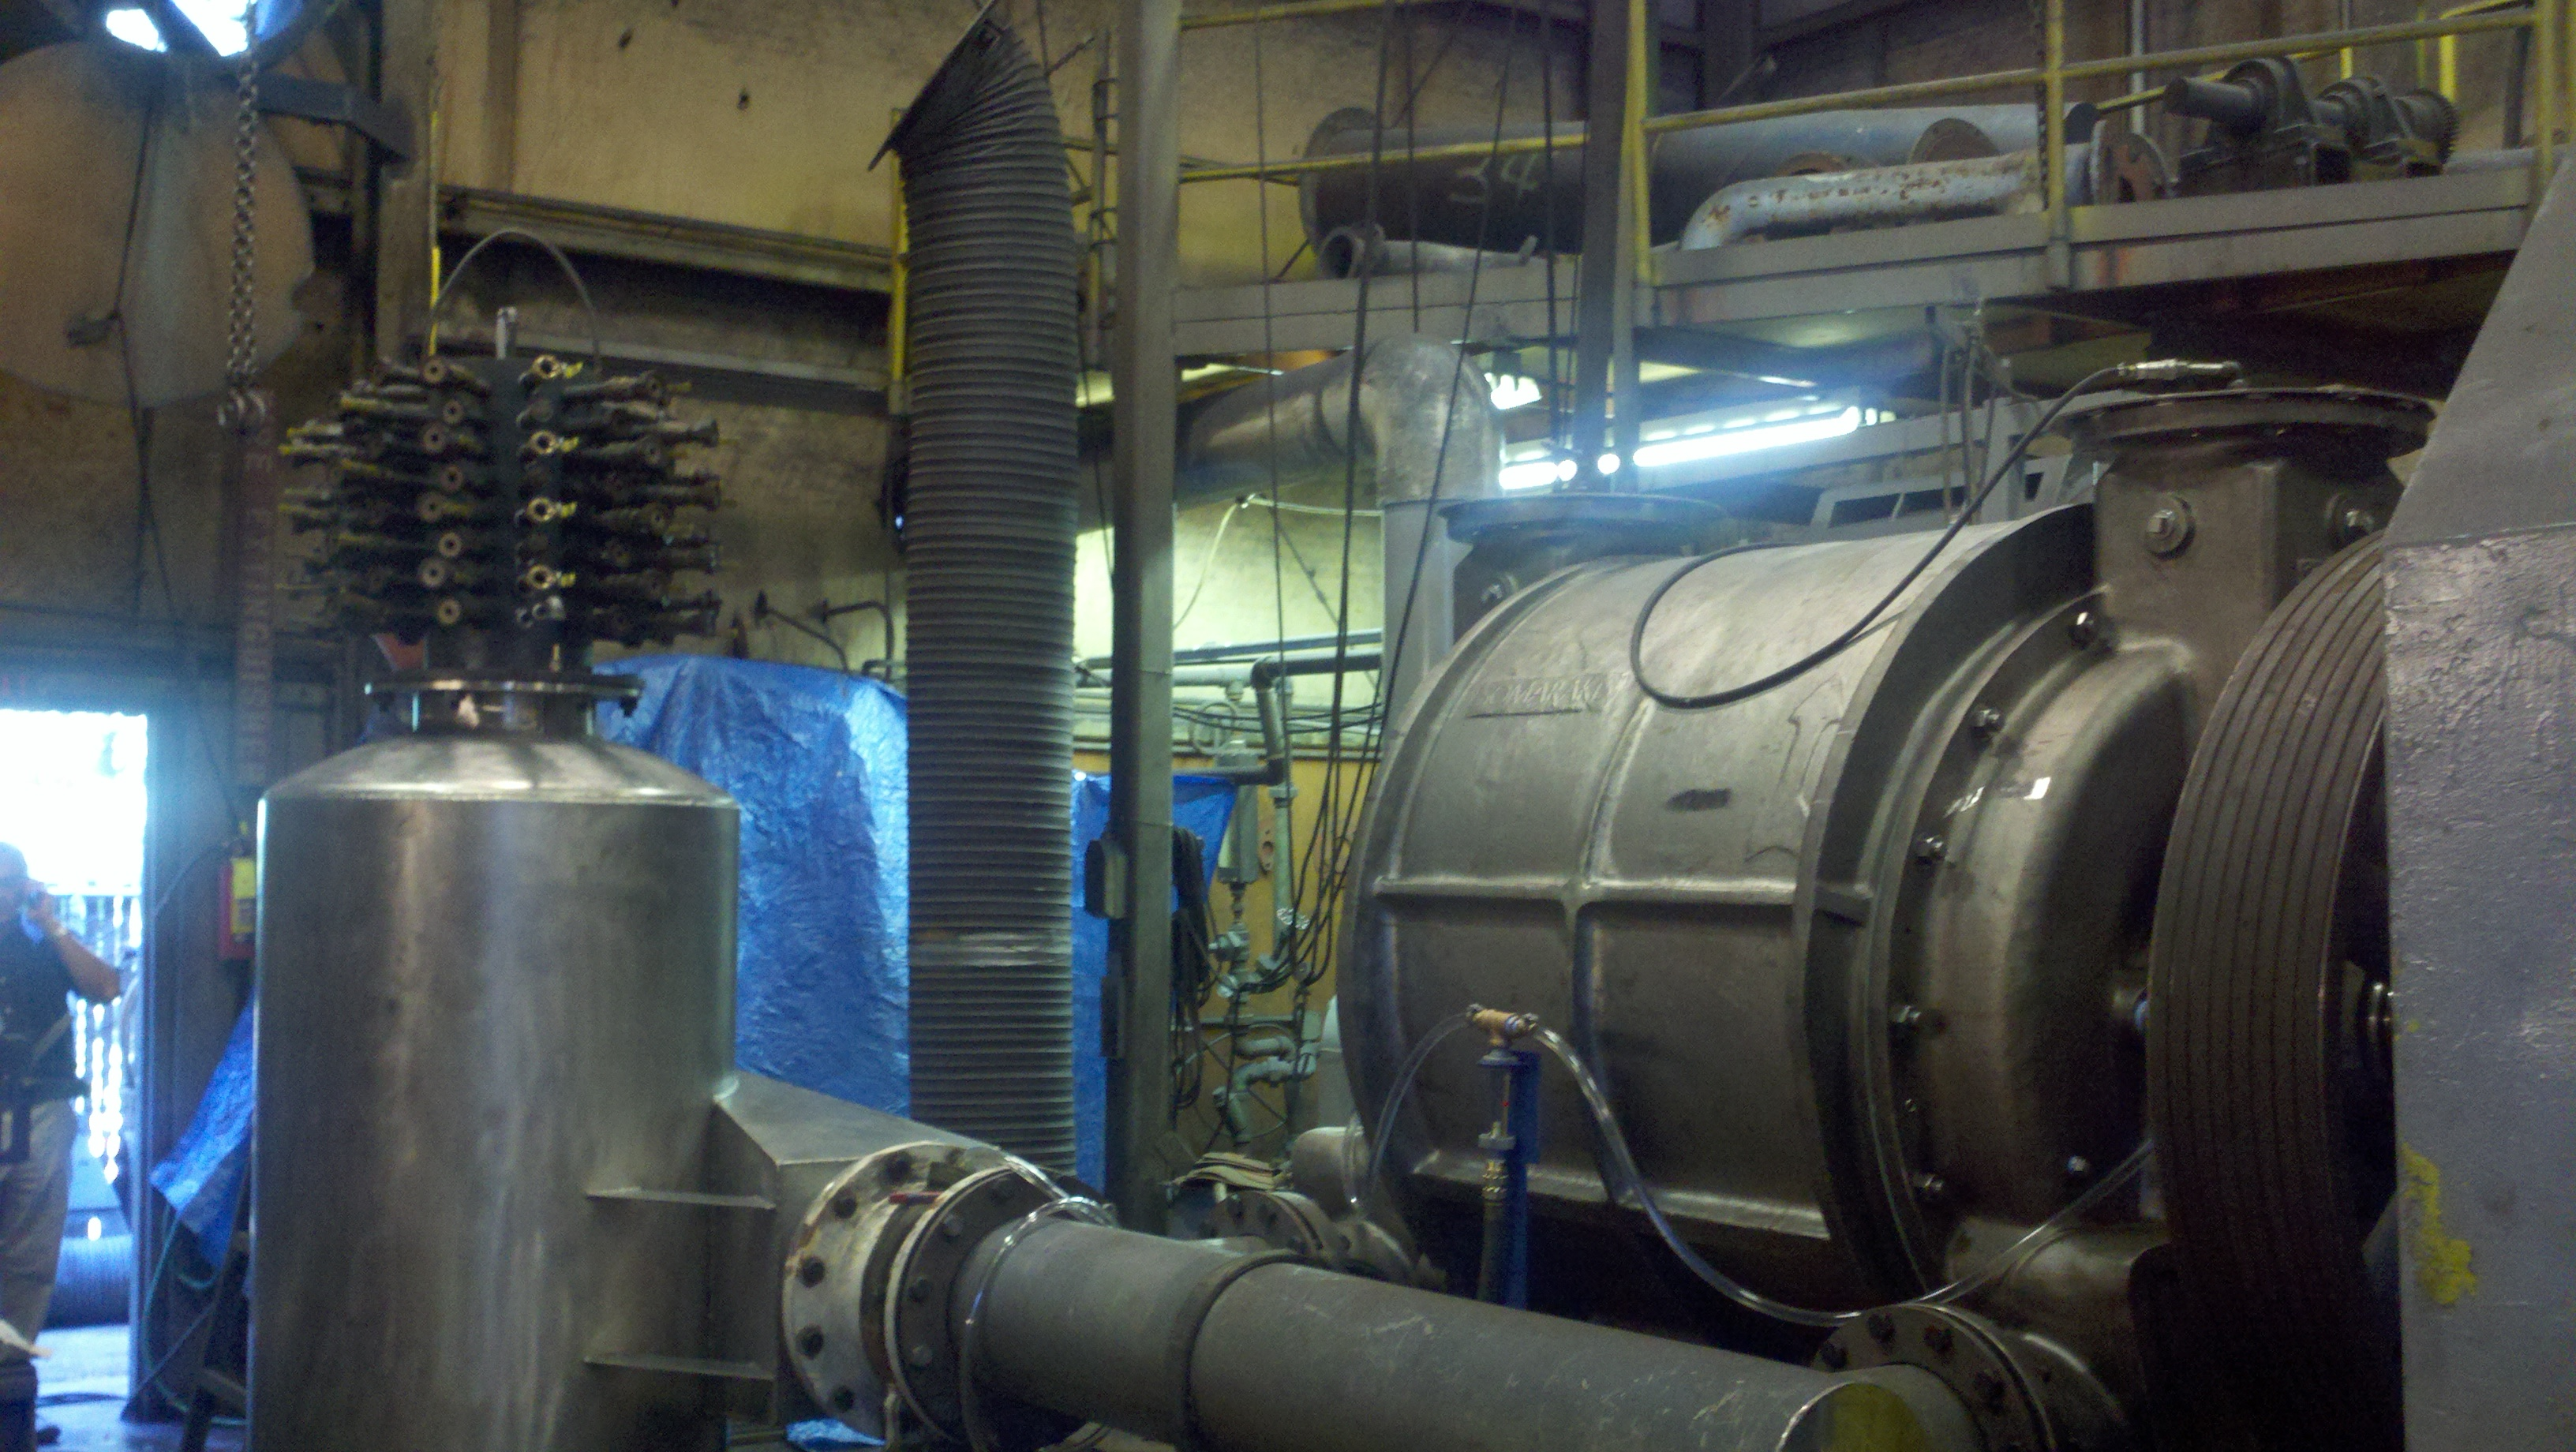 Hg vacuum  to 15 psi 316 stainless steel compressor being performance tested. Mechanical seals, petroleum application.